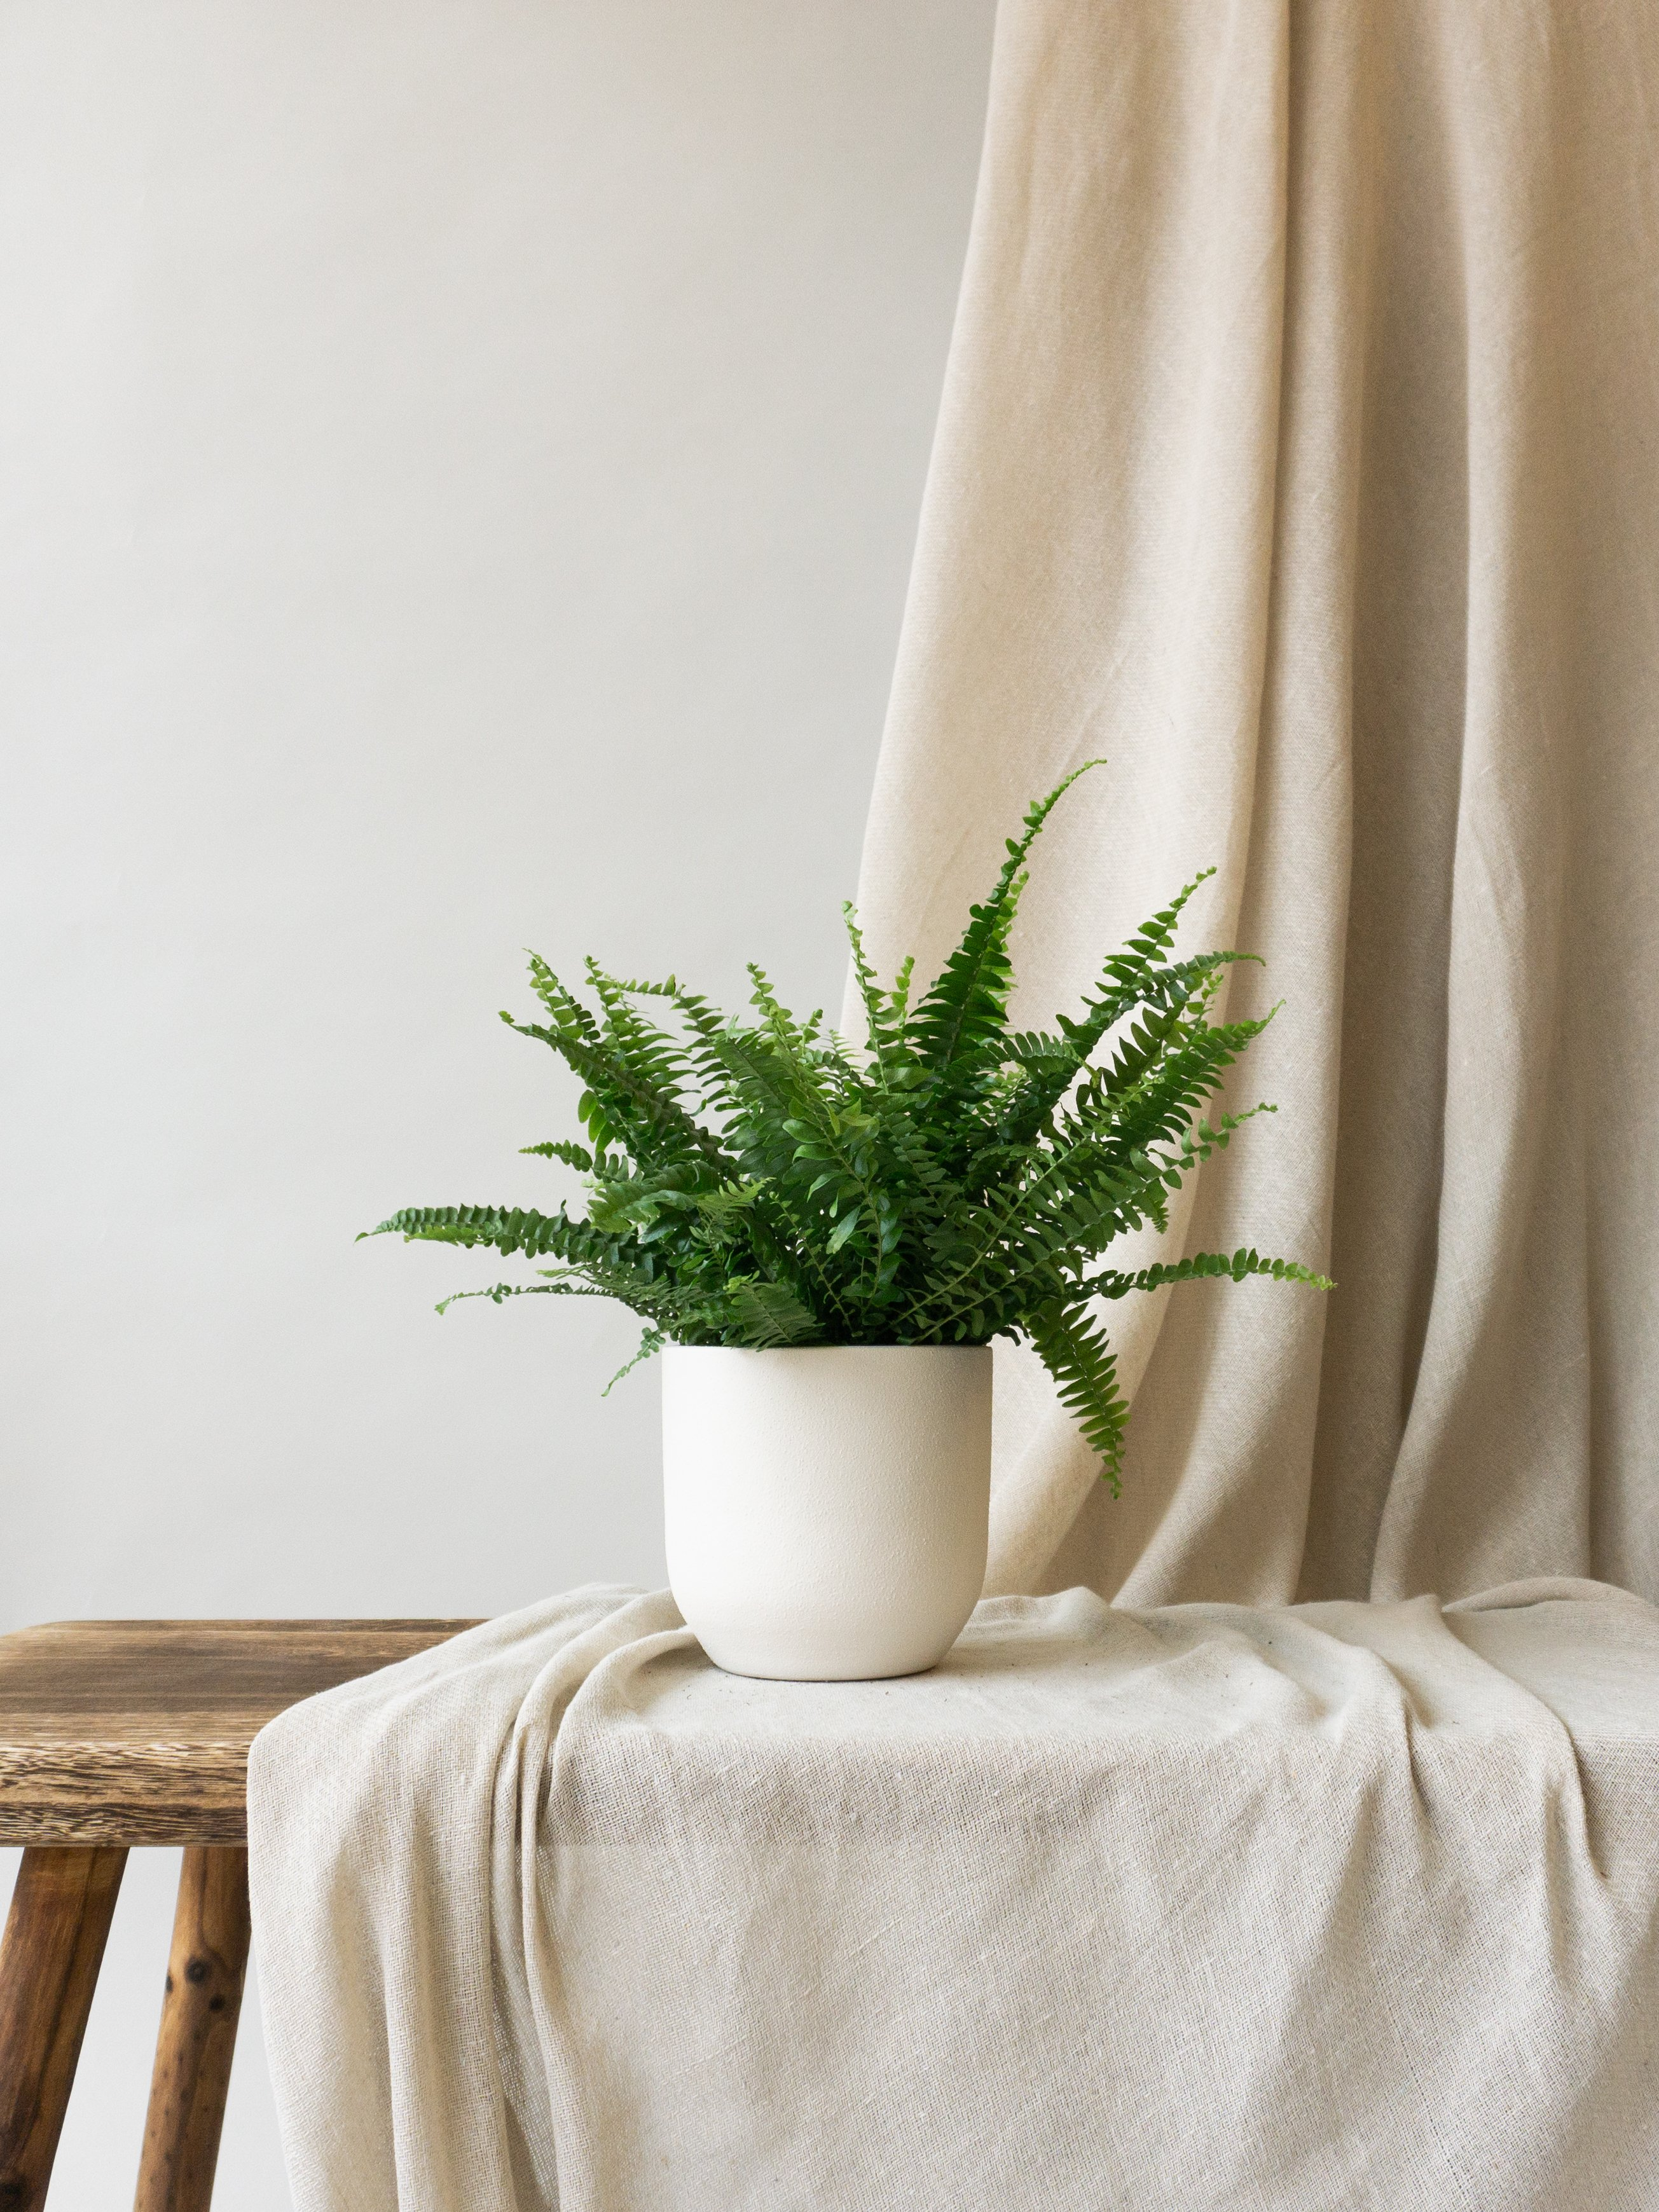 Plant care tips by Leaf Envy  Boston Fern light, watering, humidity, fertiliser requirements